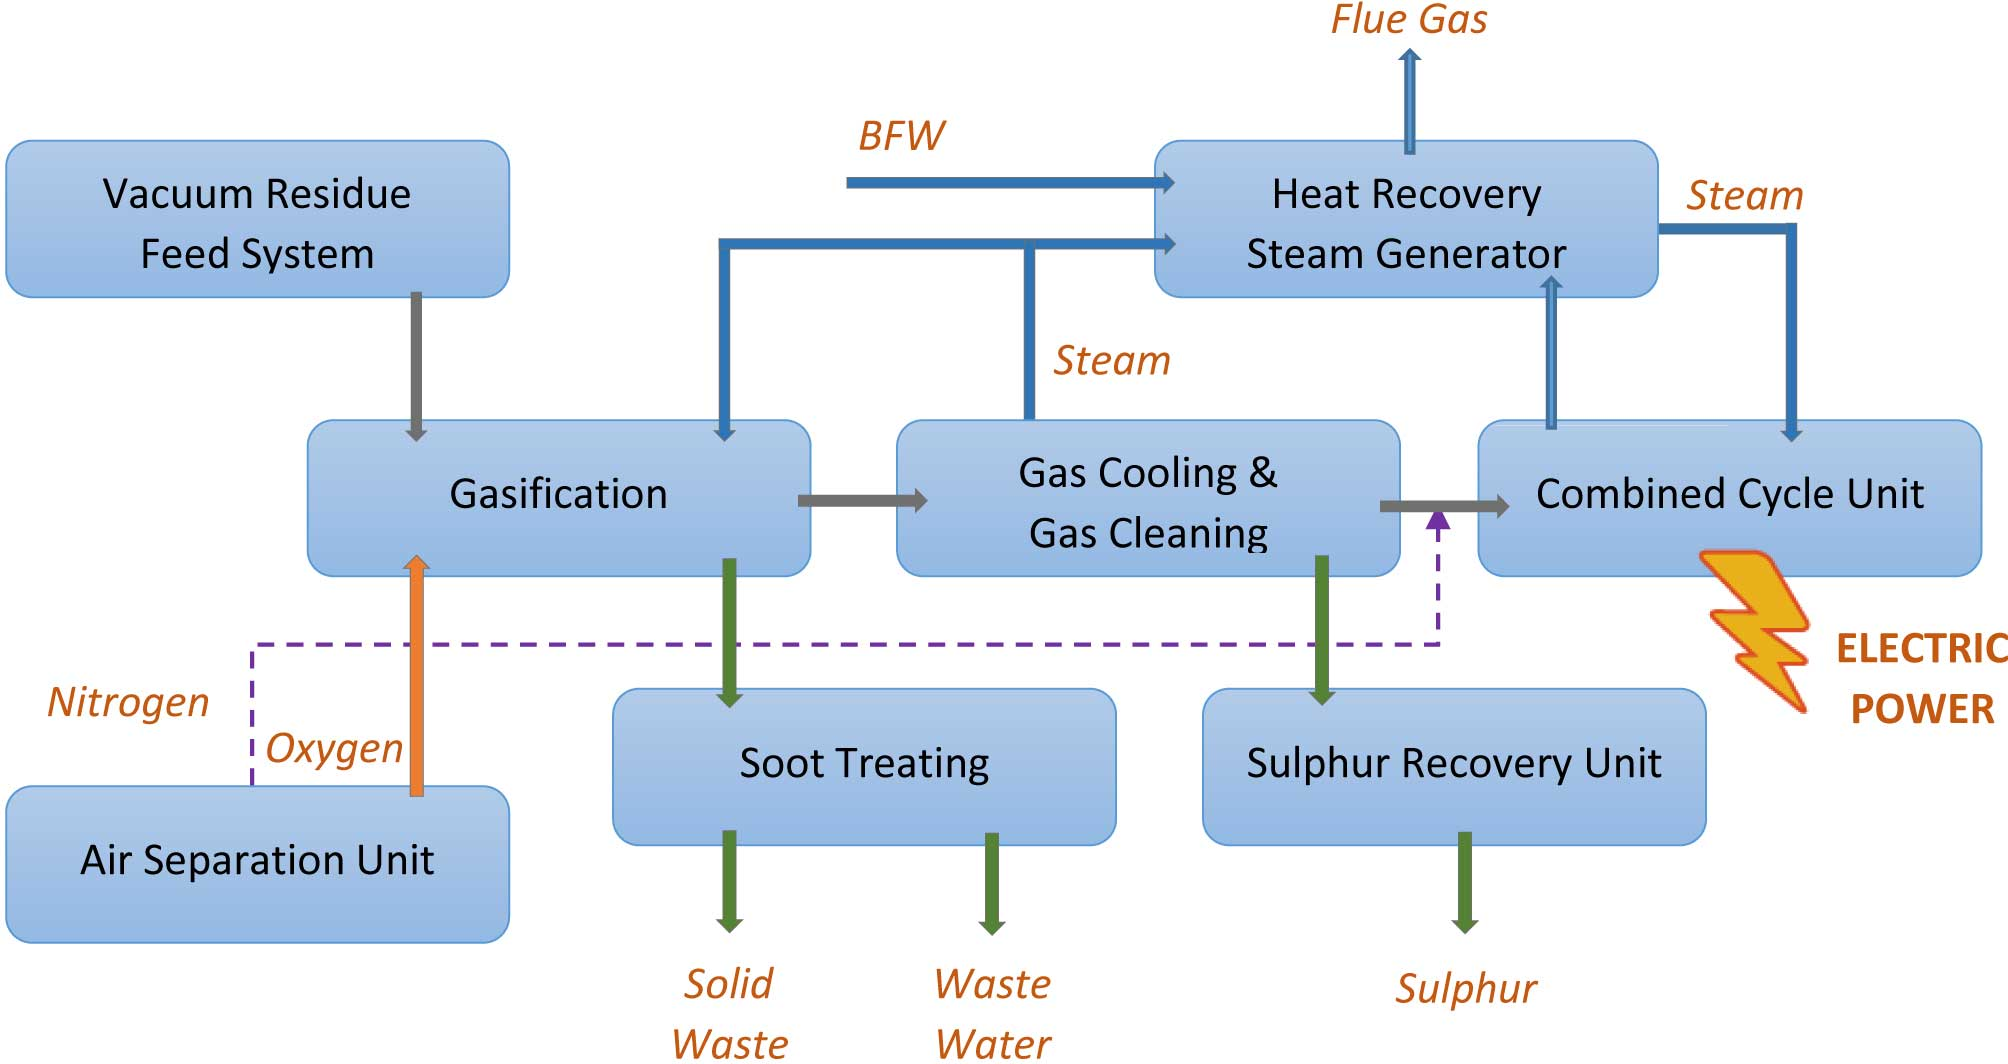 Electricity Generation From Municipal Solid Waste